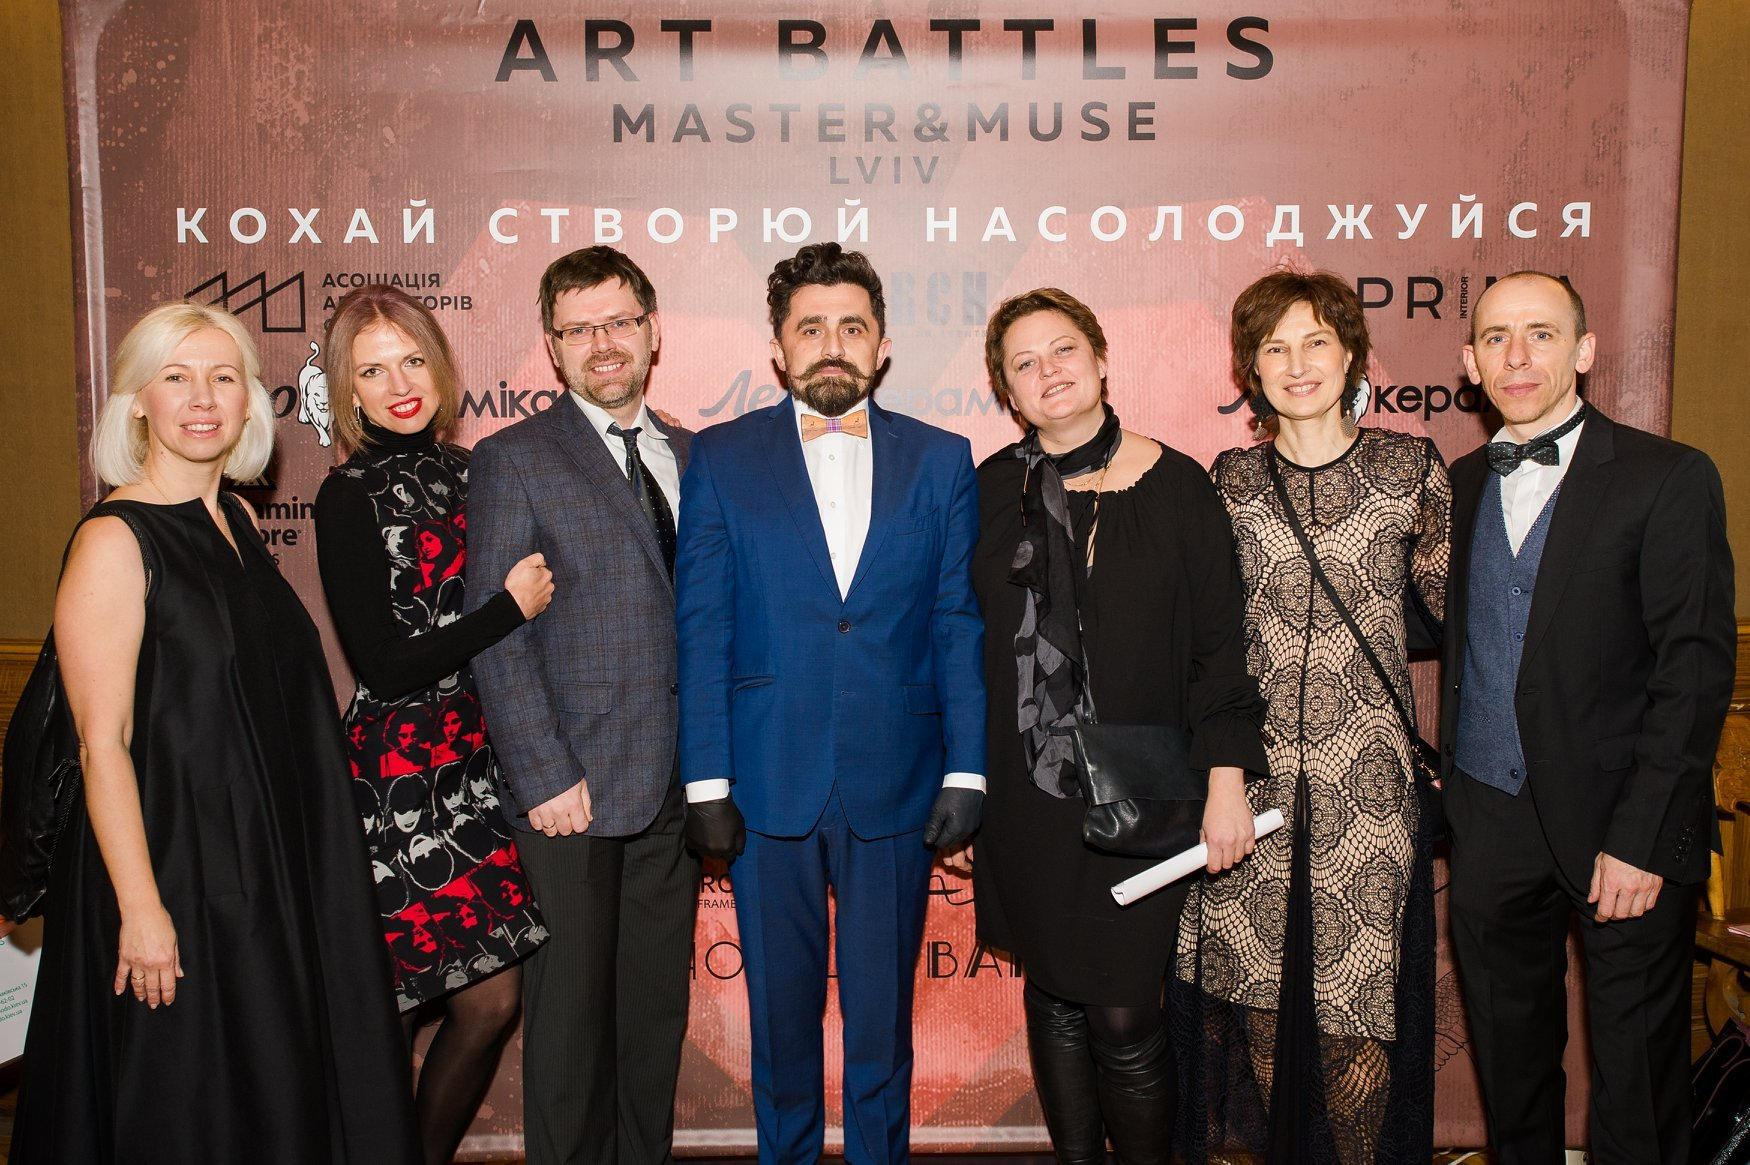 ART BATTLES lviv